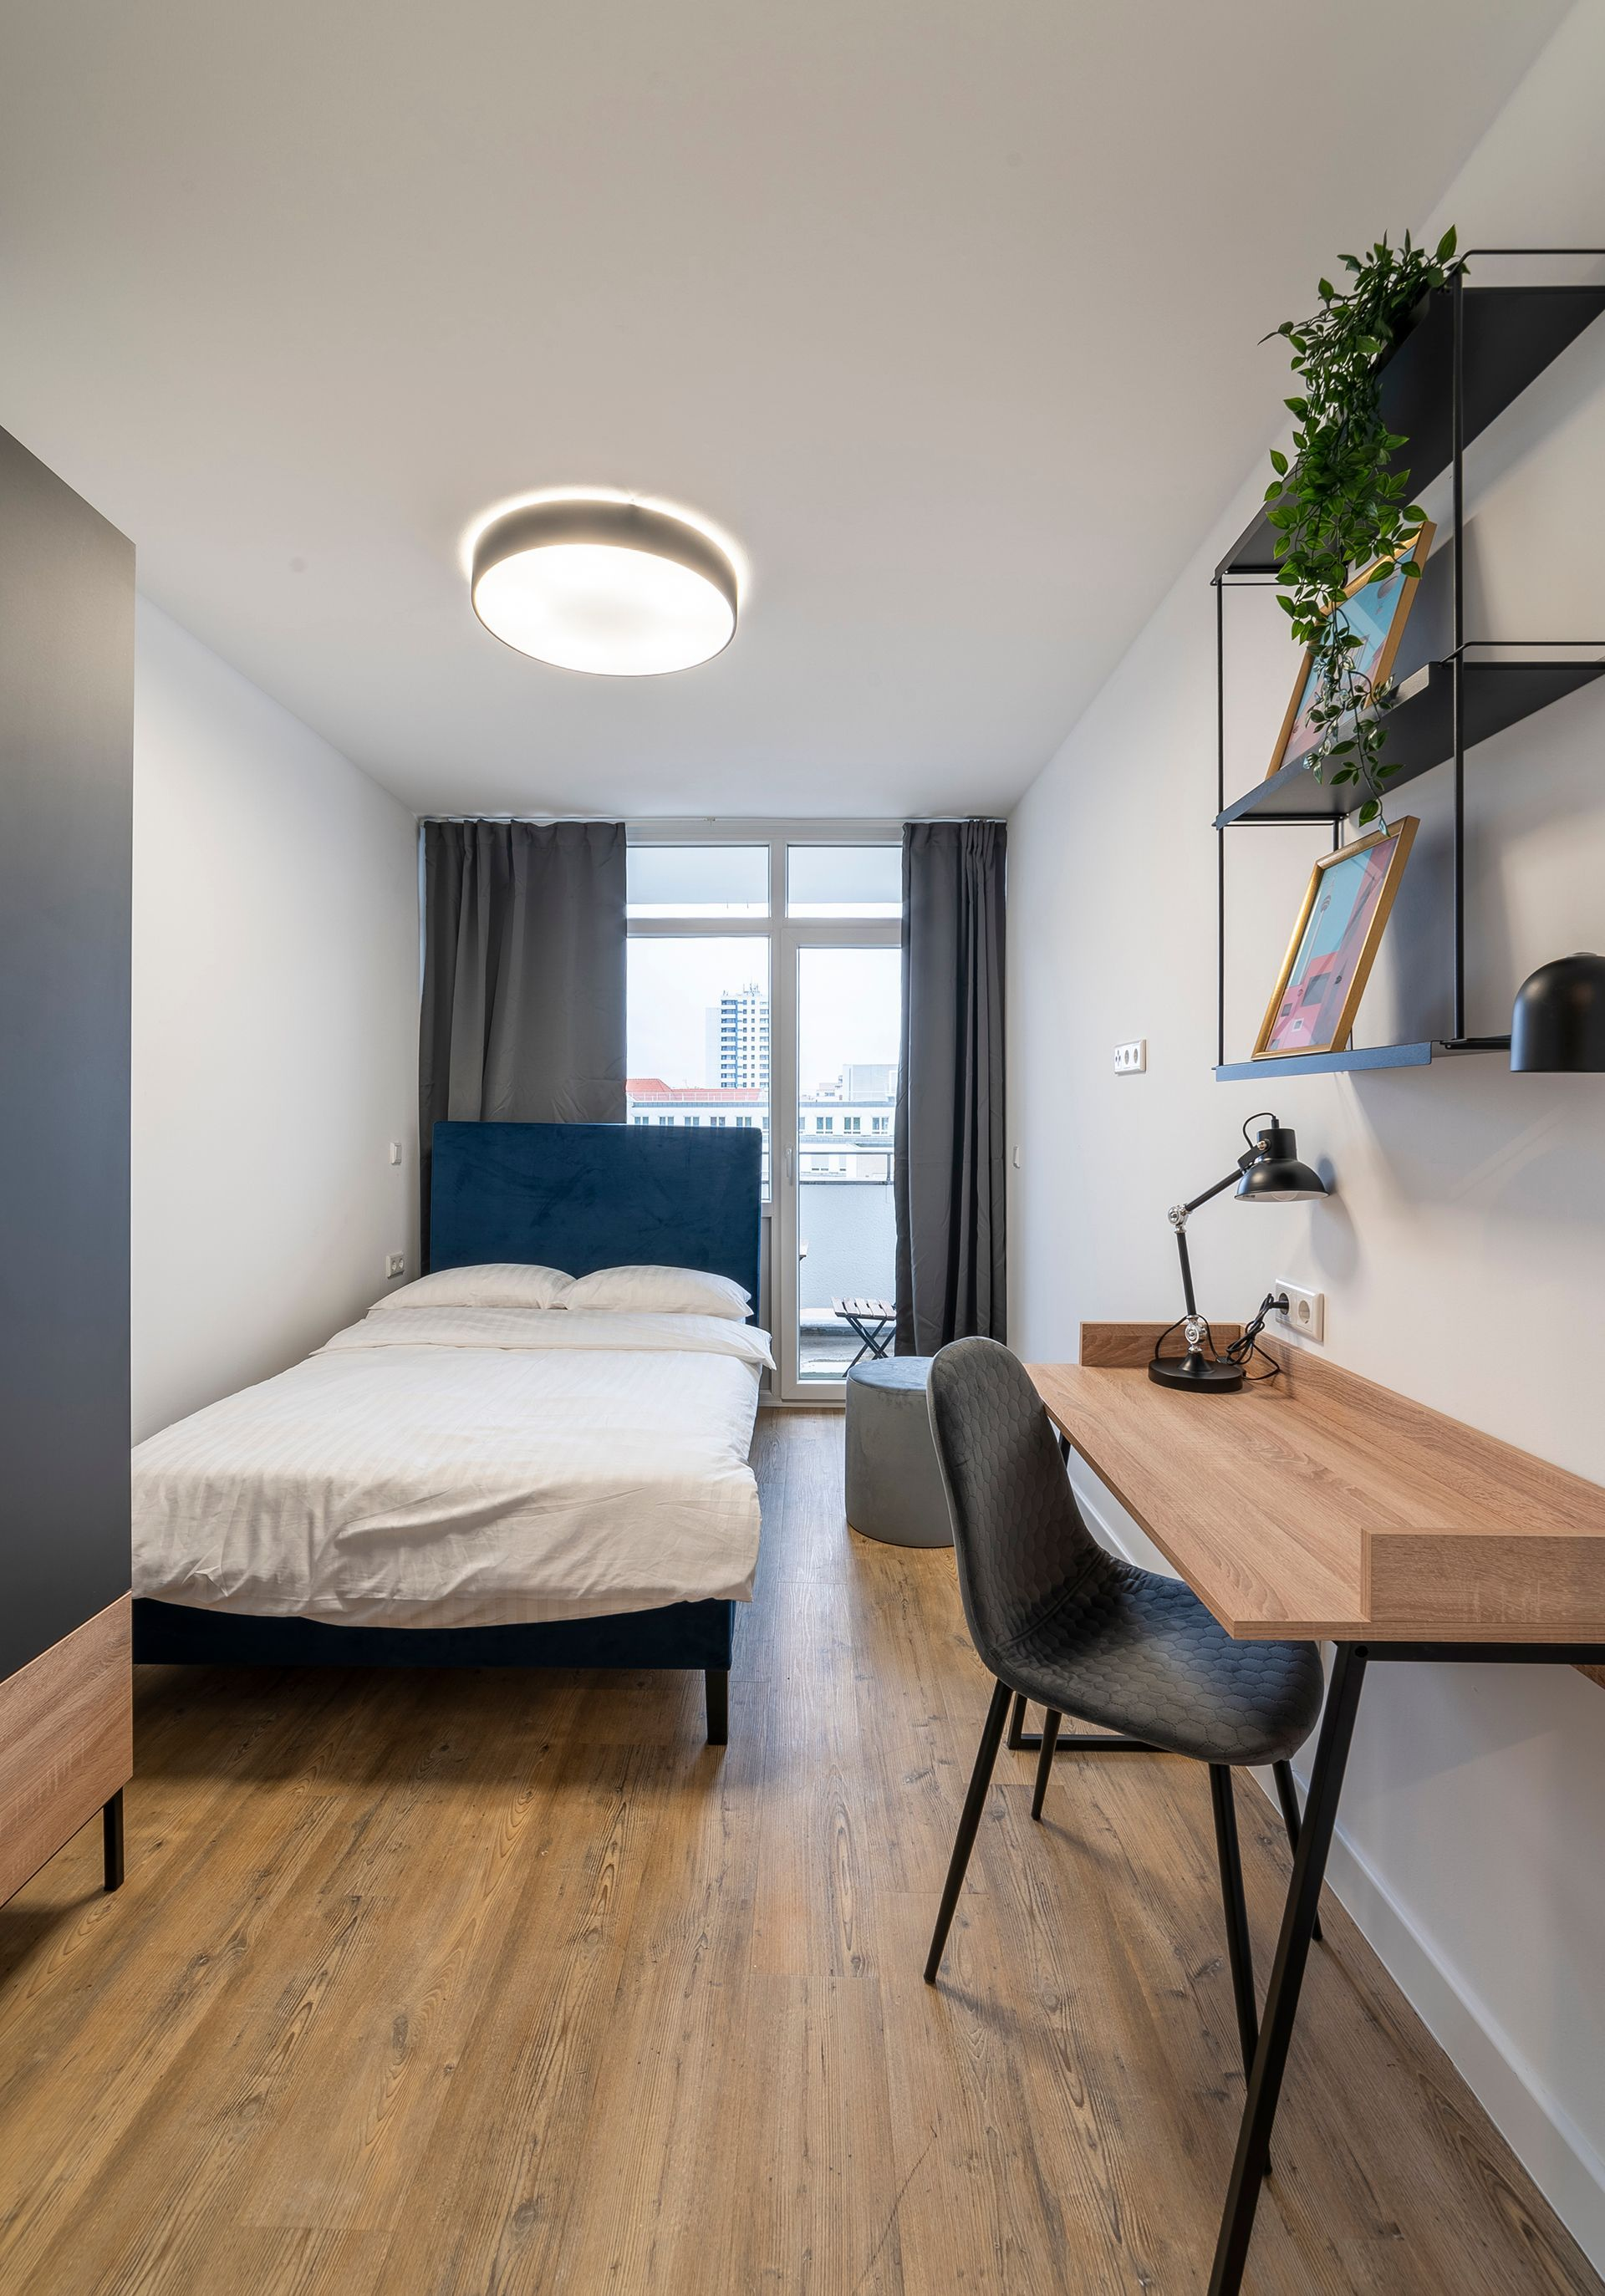 Private Room - Small apartment to rent in Berlin BILE-LE95-1089-1